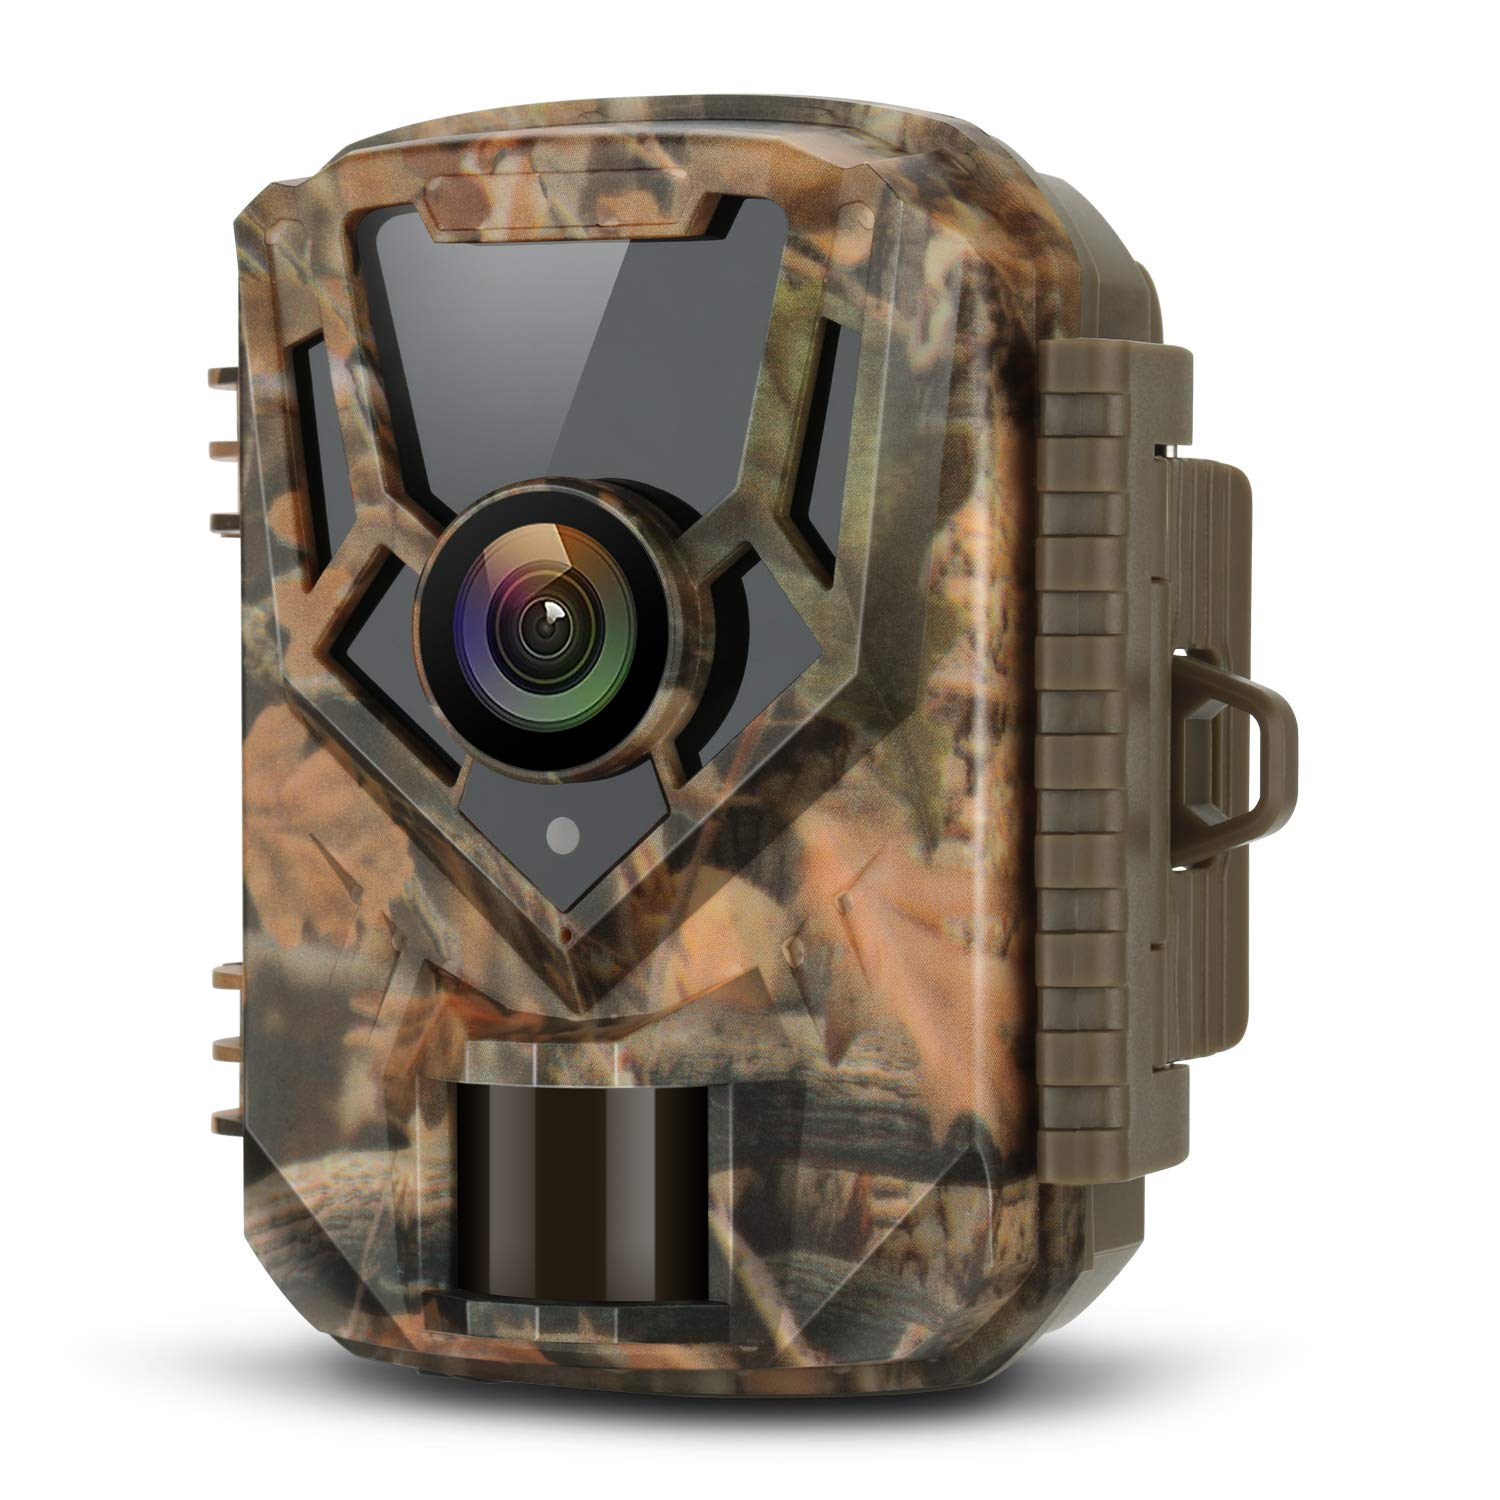 LETSCOM Trail Game Camera 16MP 1080P, 0.4s Trigger Speed Scouting Hunting Cams with Night Vision Motion Activated for Outdoor Wildlife Monitoring and Home Surveillance Yellow by LETSCOM